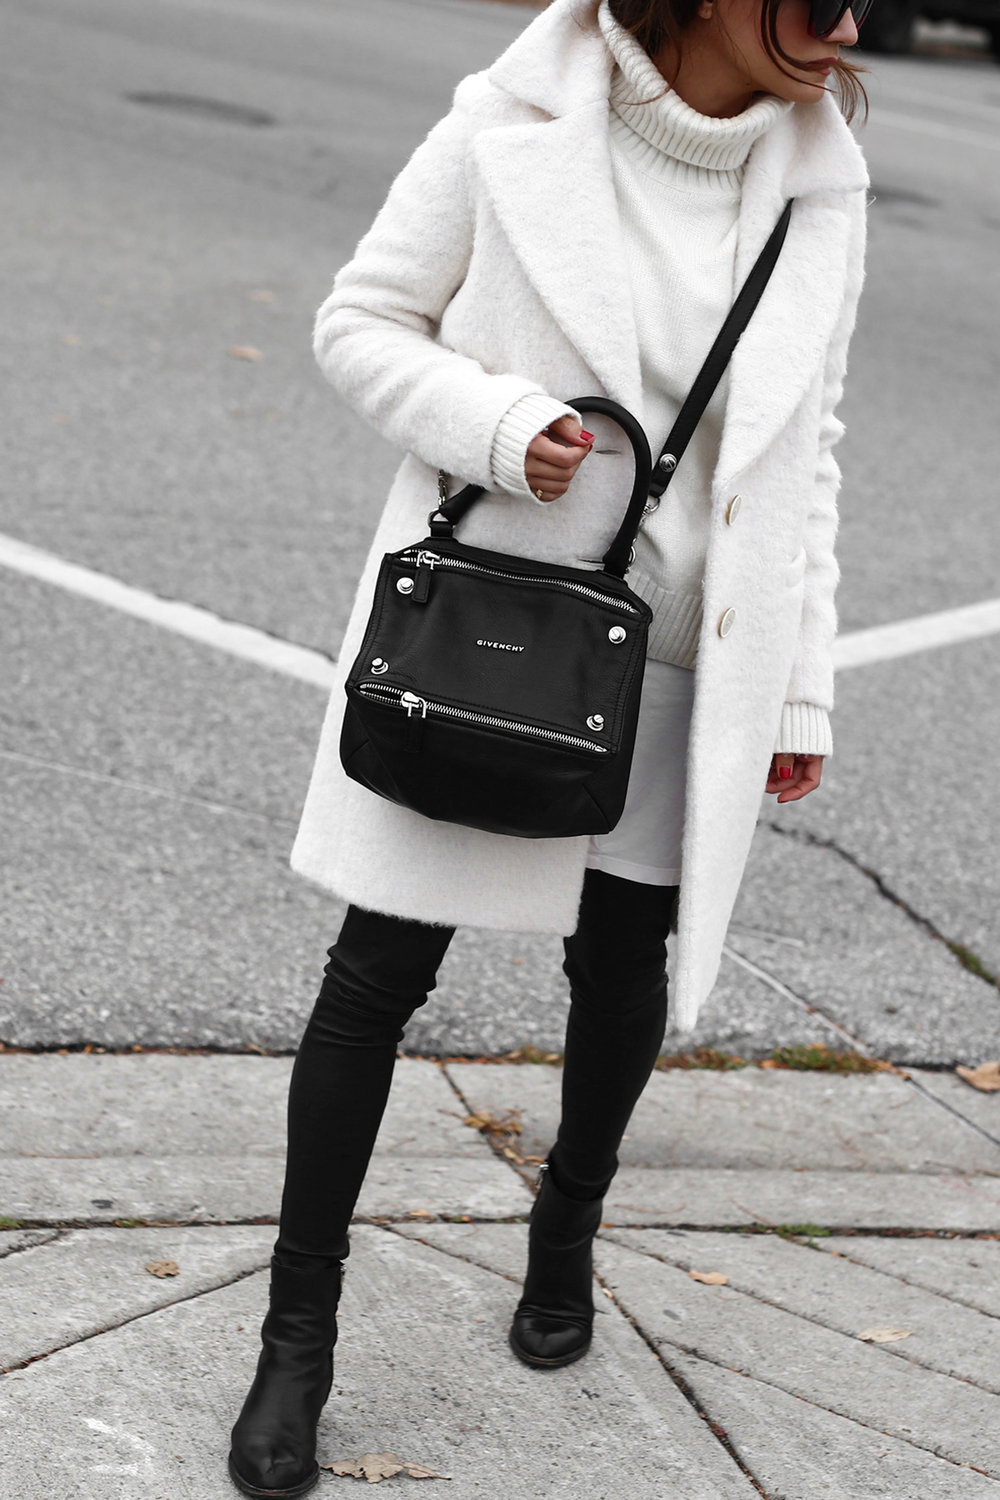 Winter White oversized knit, coat, leather leggings, Givenchy leopard print studded boots and Givenchy Pandora bag street style_2715.jpg